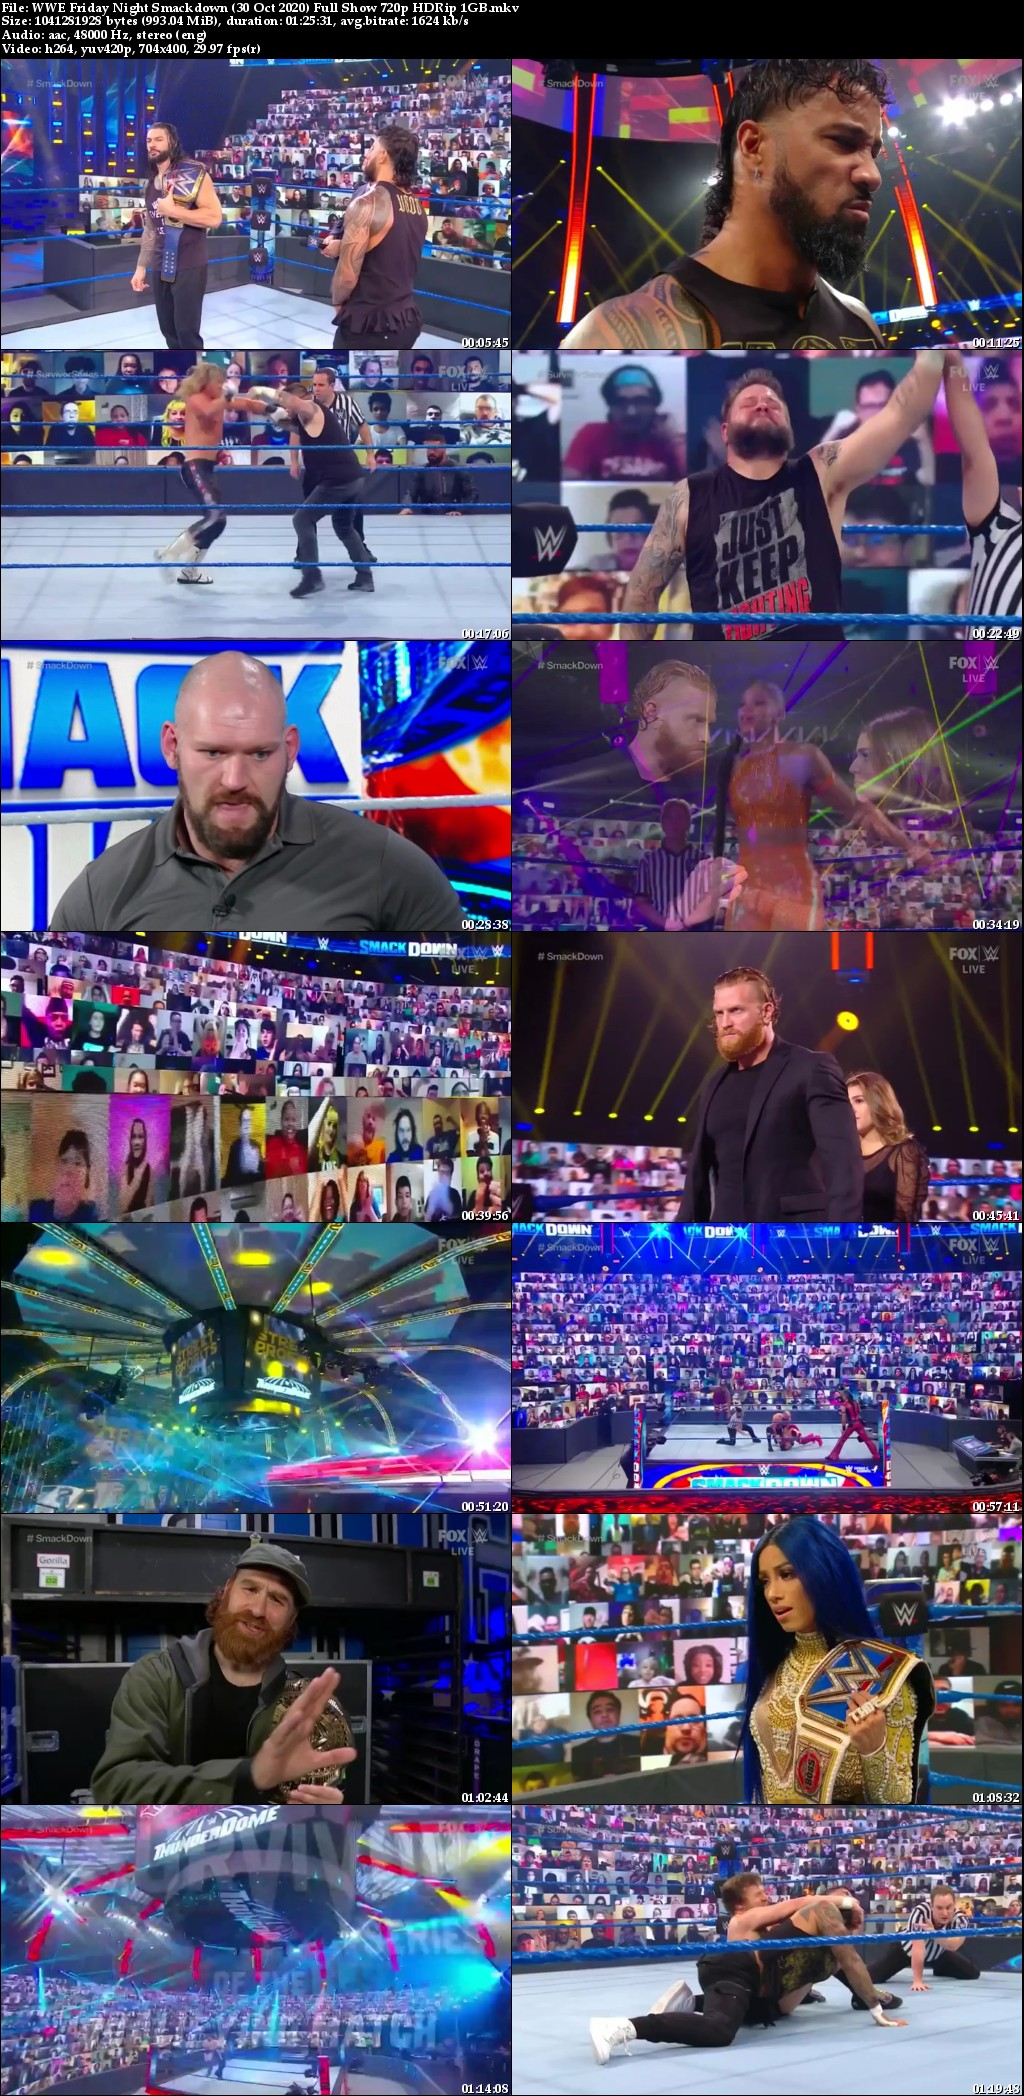 WWE-Friday-Night-Smackdown-30-Oct-2020-Full-Show-720p-HDRip-1-GB